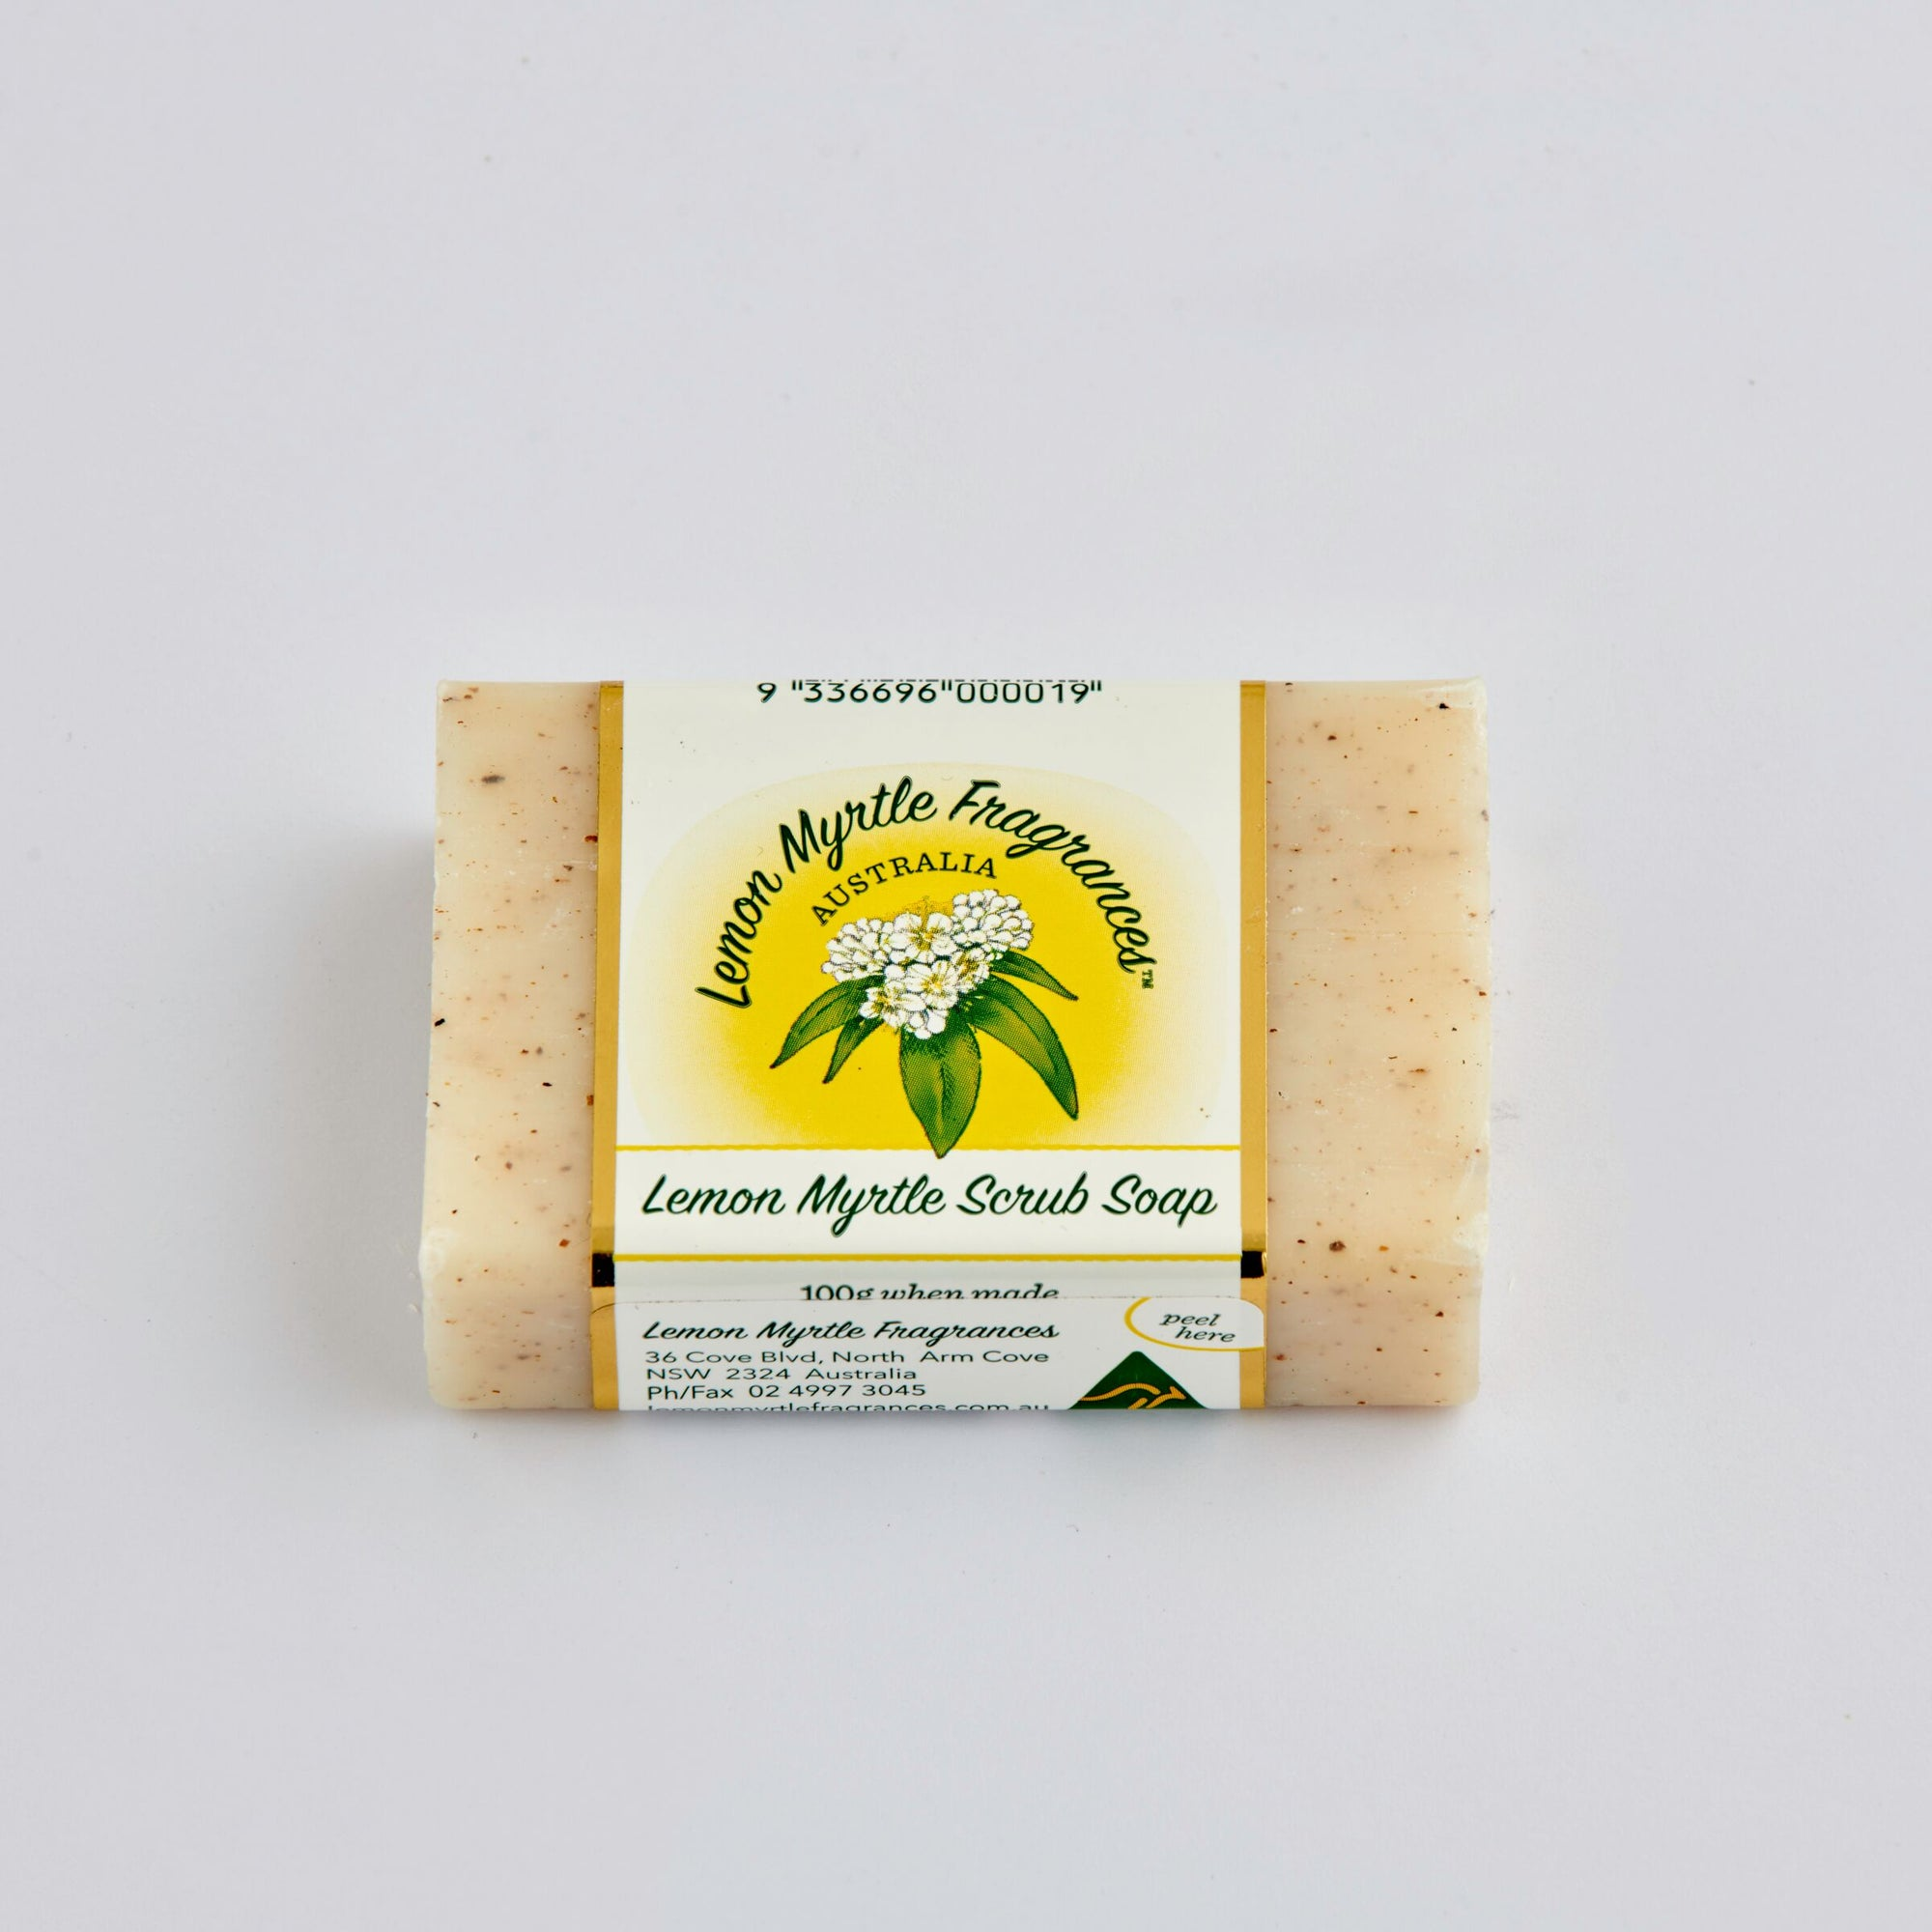 Lemon Myrtle Natural Soap - Single Scrub Bars